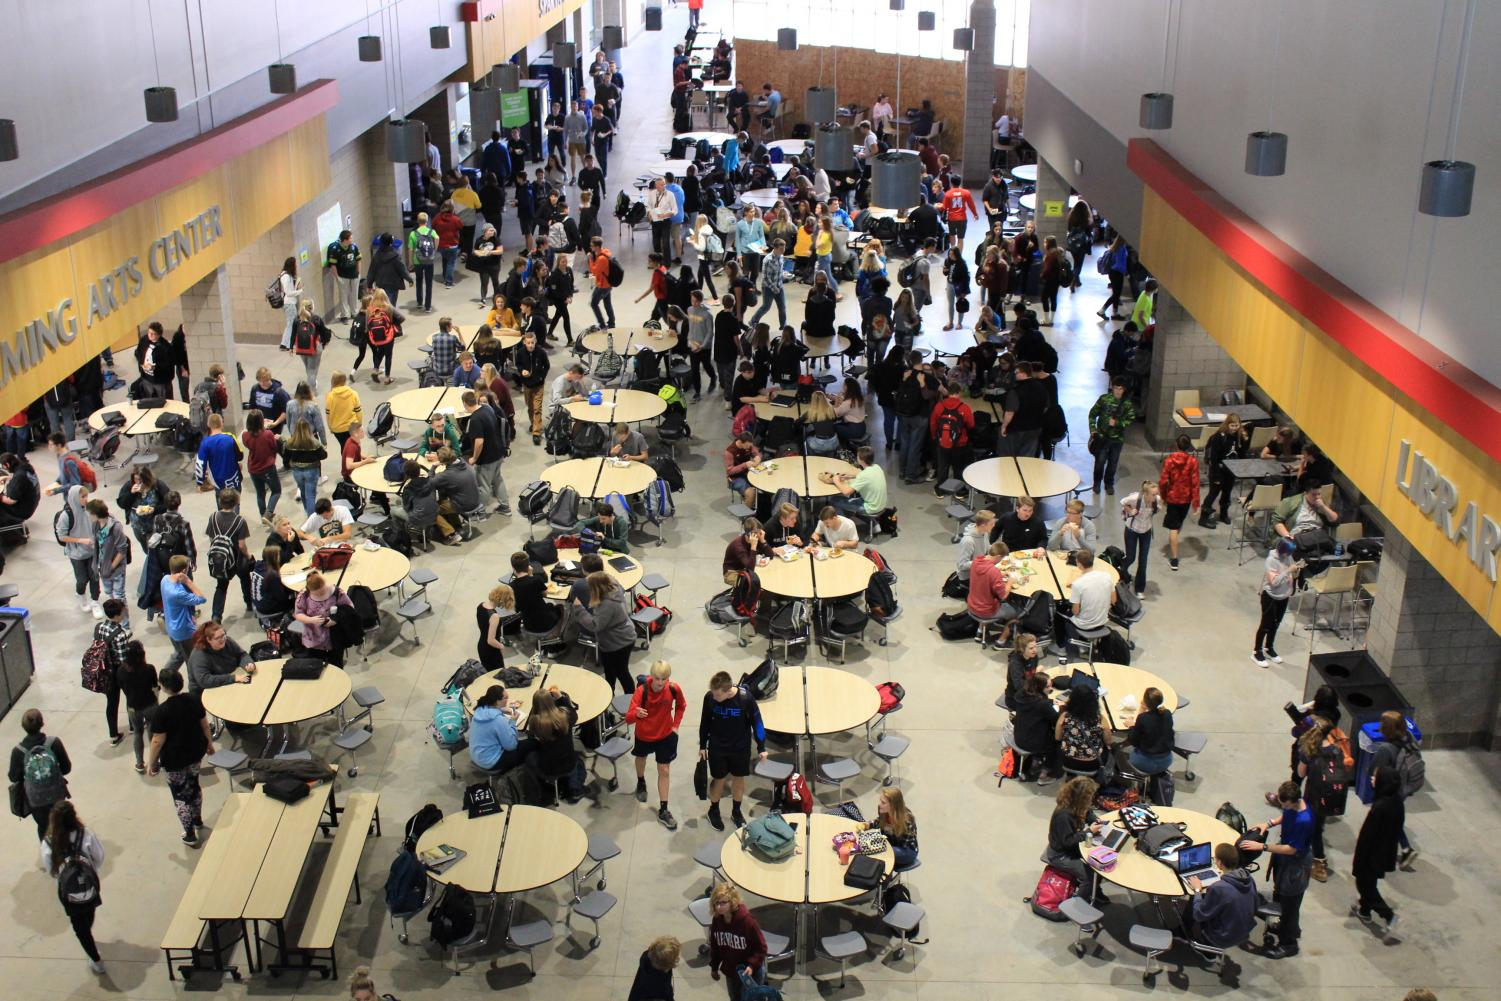 Students gather in the Commons during Lunch A on October 19.